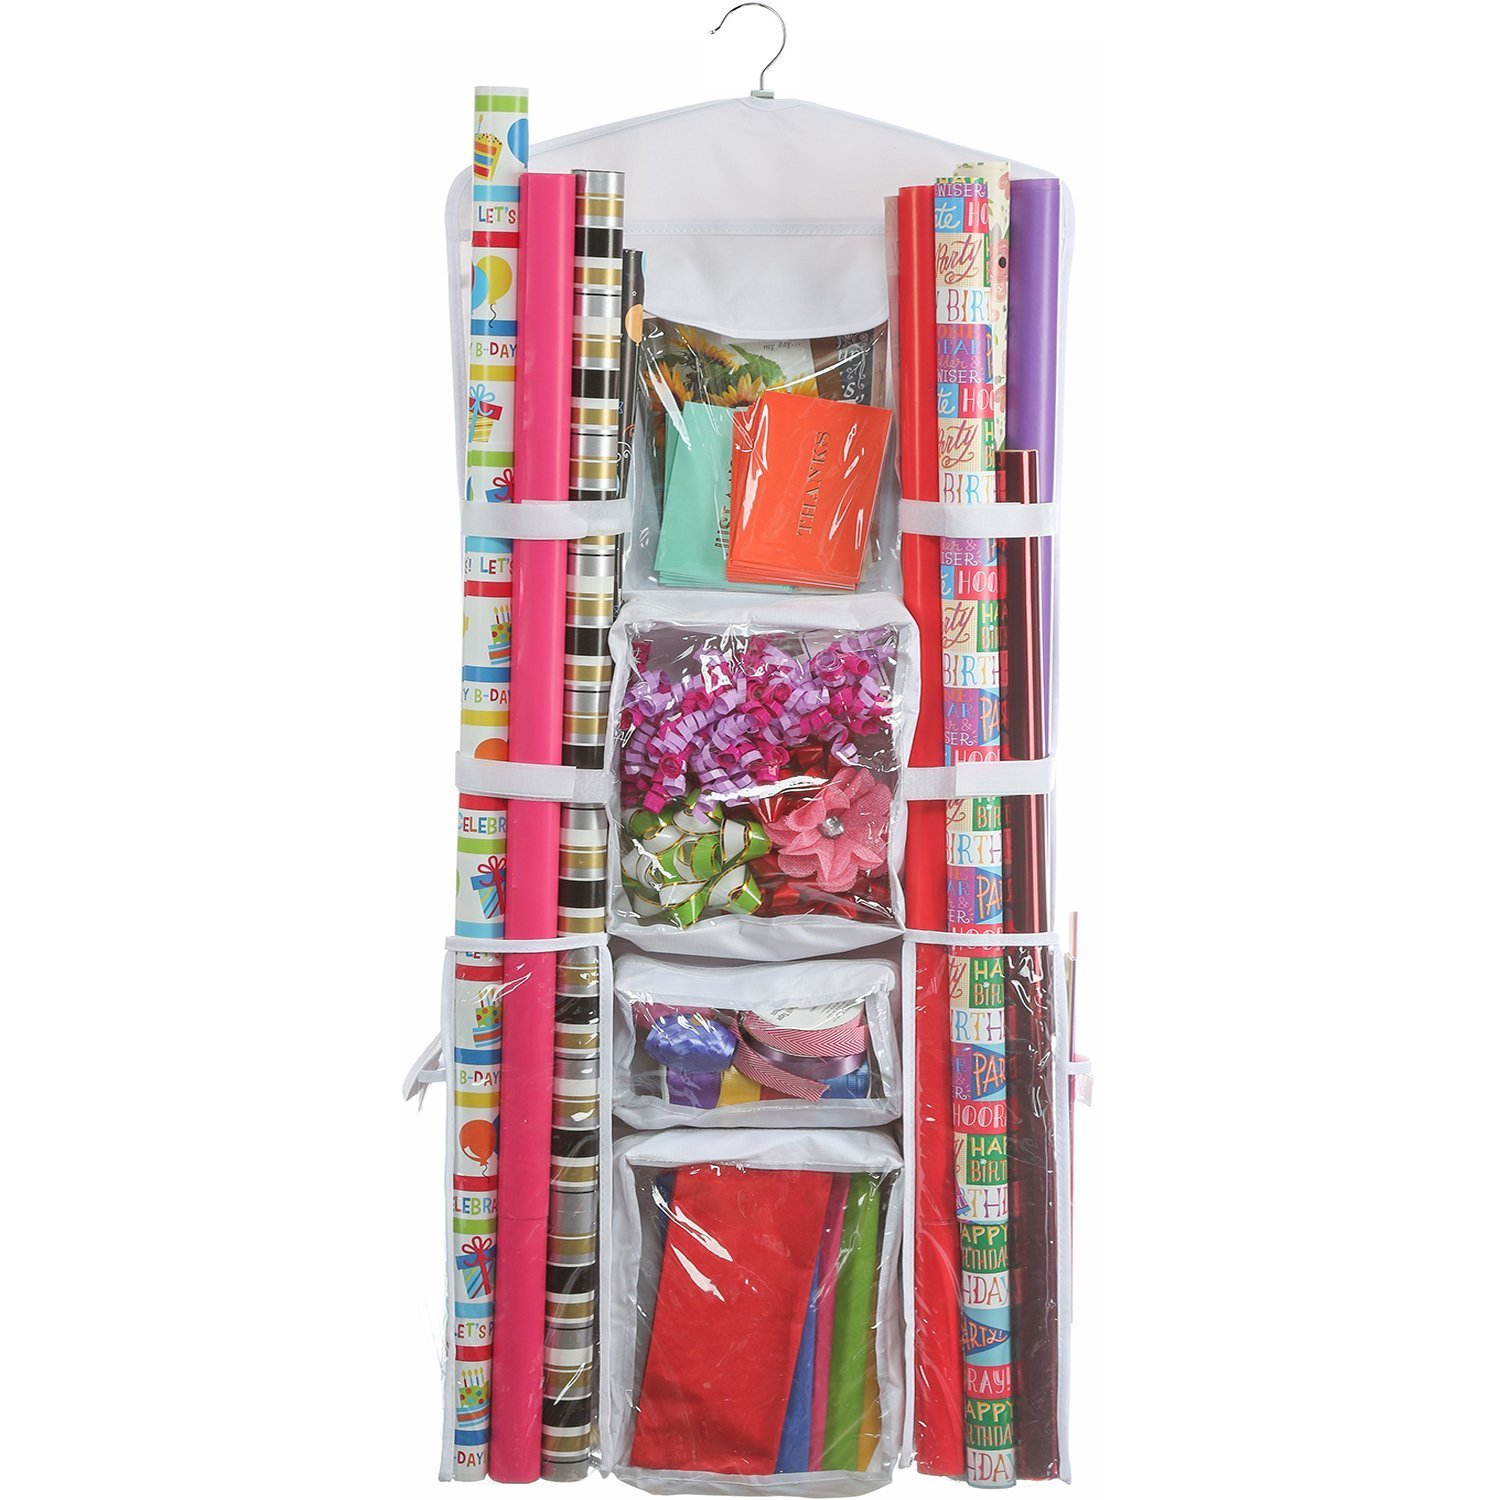 Clorso Wrapping Paper Storage Fits 40 Inch Gift Wrap Roll, Gift Bags, Bow, Ribbons, Includes Door Hook Plus Stickers